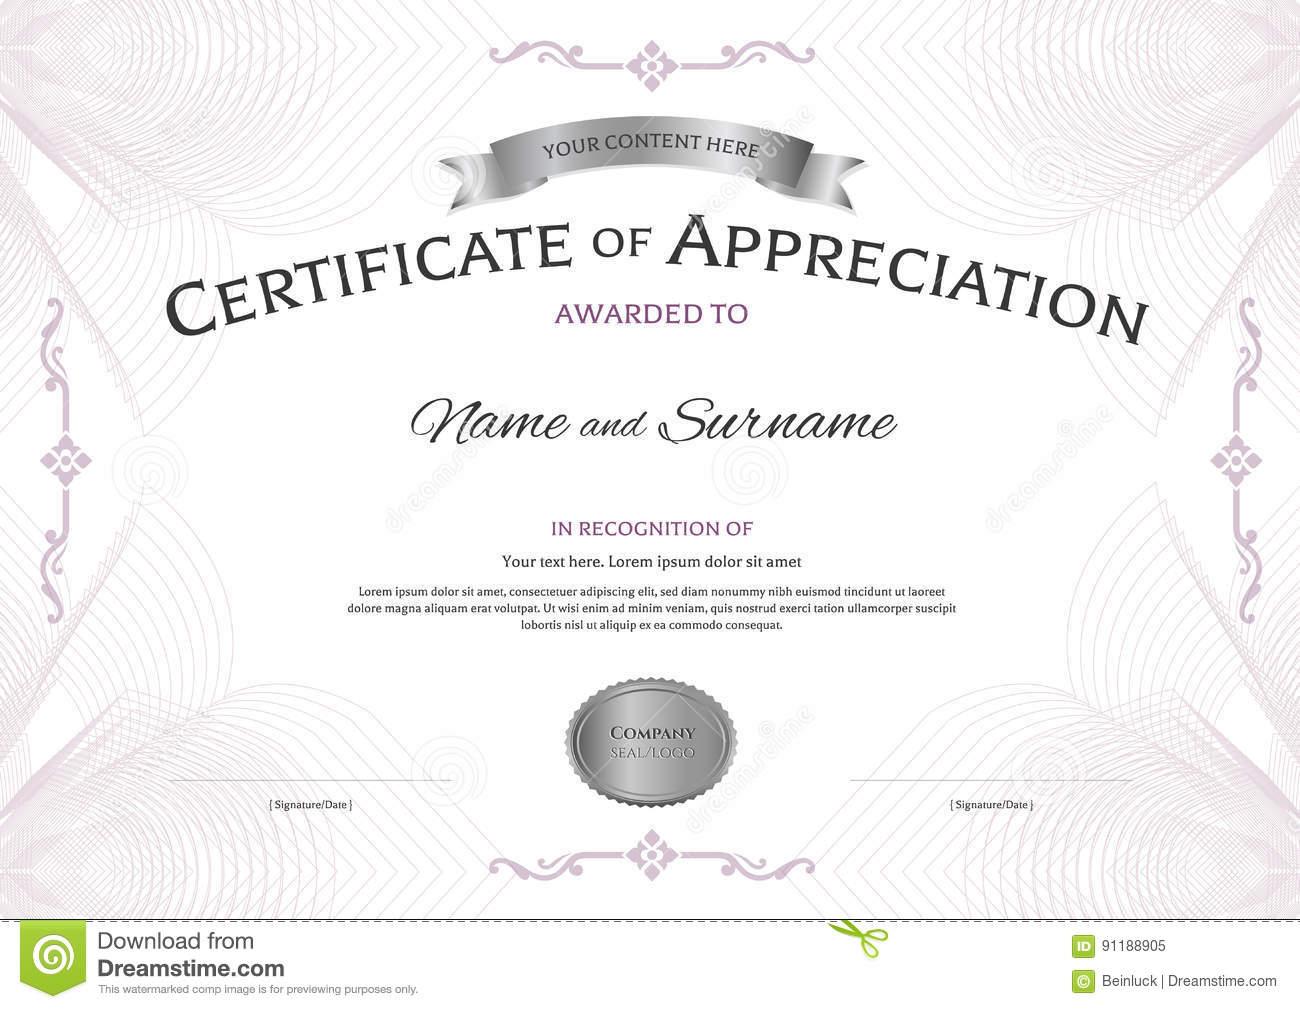 Certificate of appreciation template with award ribbon on abstra certificate of appreciation template with award ribbon on abstra royalty free vector yelopaper Image collections